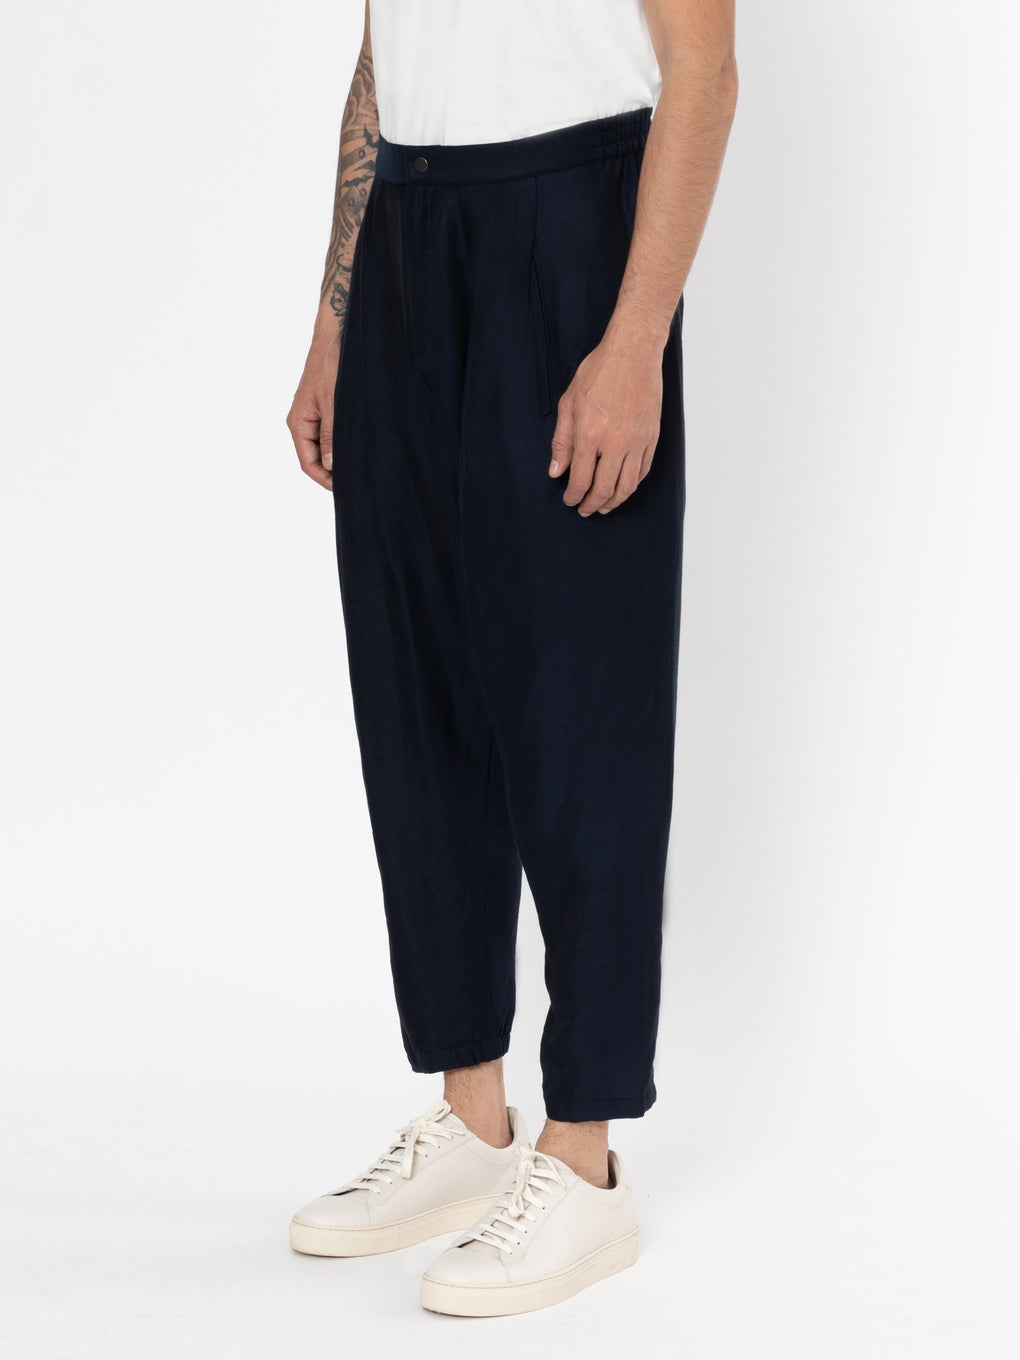 Phantasm Dhoti Pants